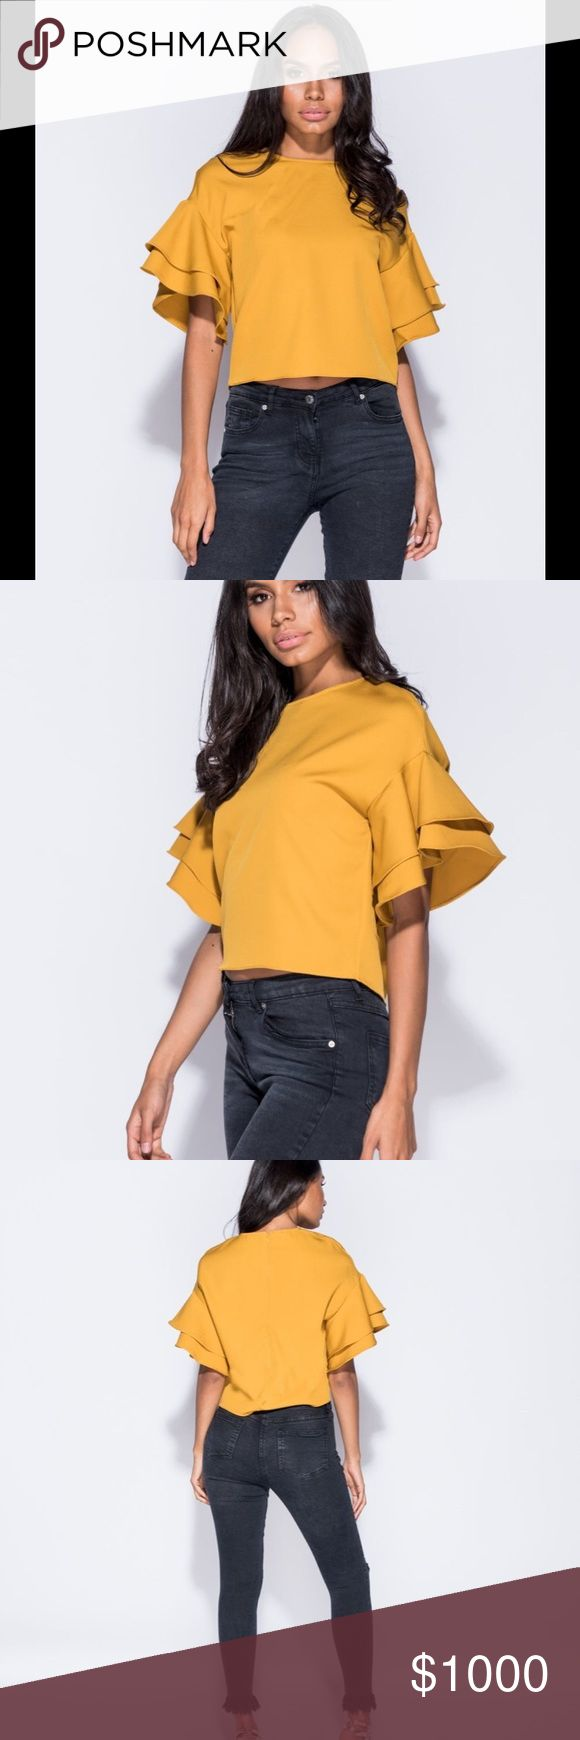 coming soon!!! Frill sleeve round neck top!! Hit all the right style notes this season with this European imported top!  Mustard color is SOOO In this season !!! Crepe fabric, so this item does have some stretch if in between sizes ❤️   Tags: free People, Zara, philosophy, lulus, fashion nova, tobi, misguided, Bebe, bcbg Philosophy Tops Blouses